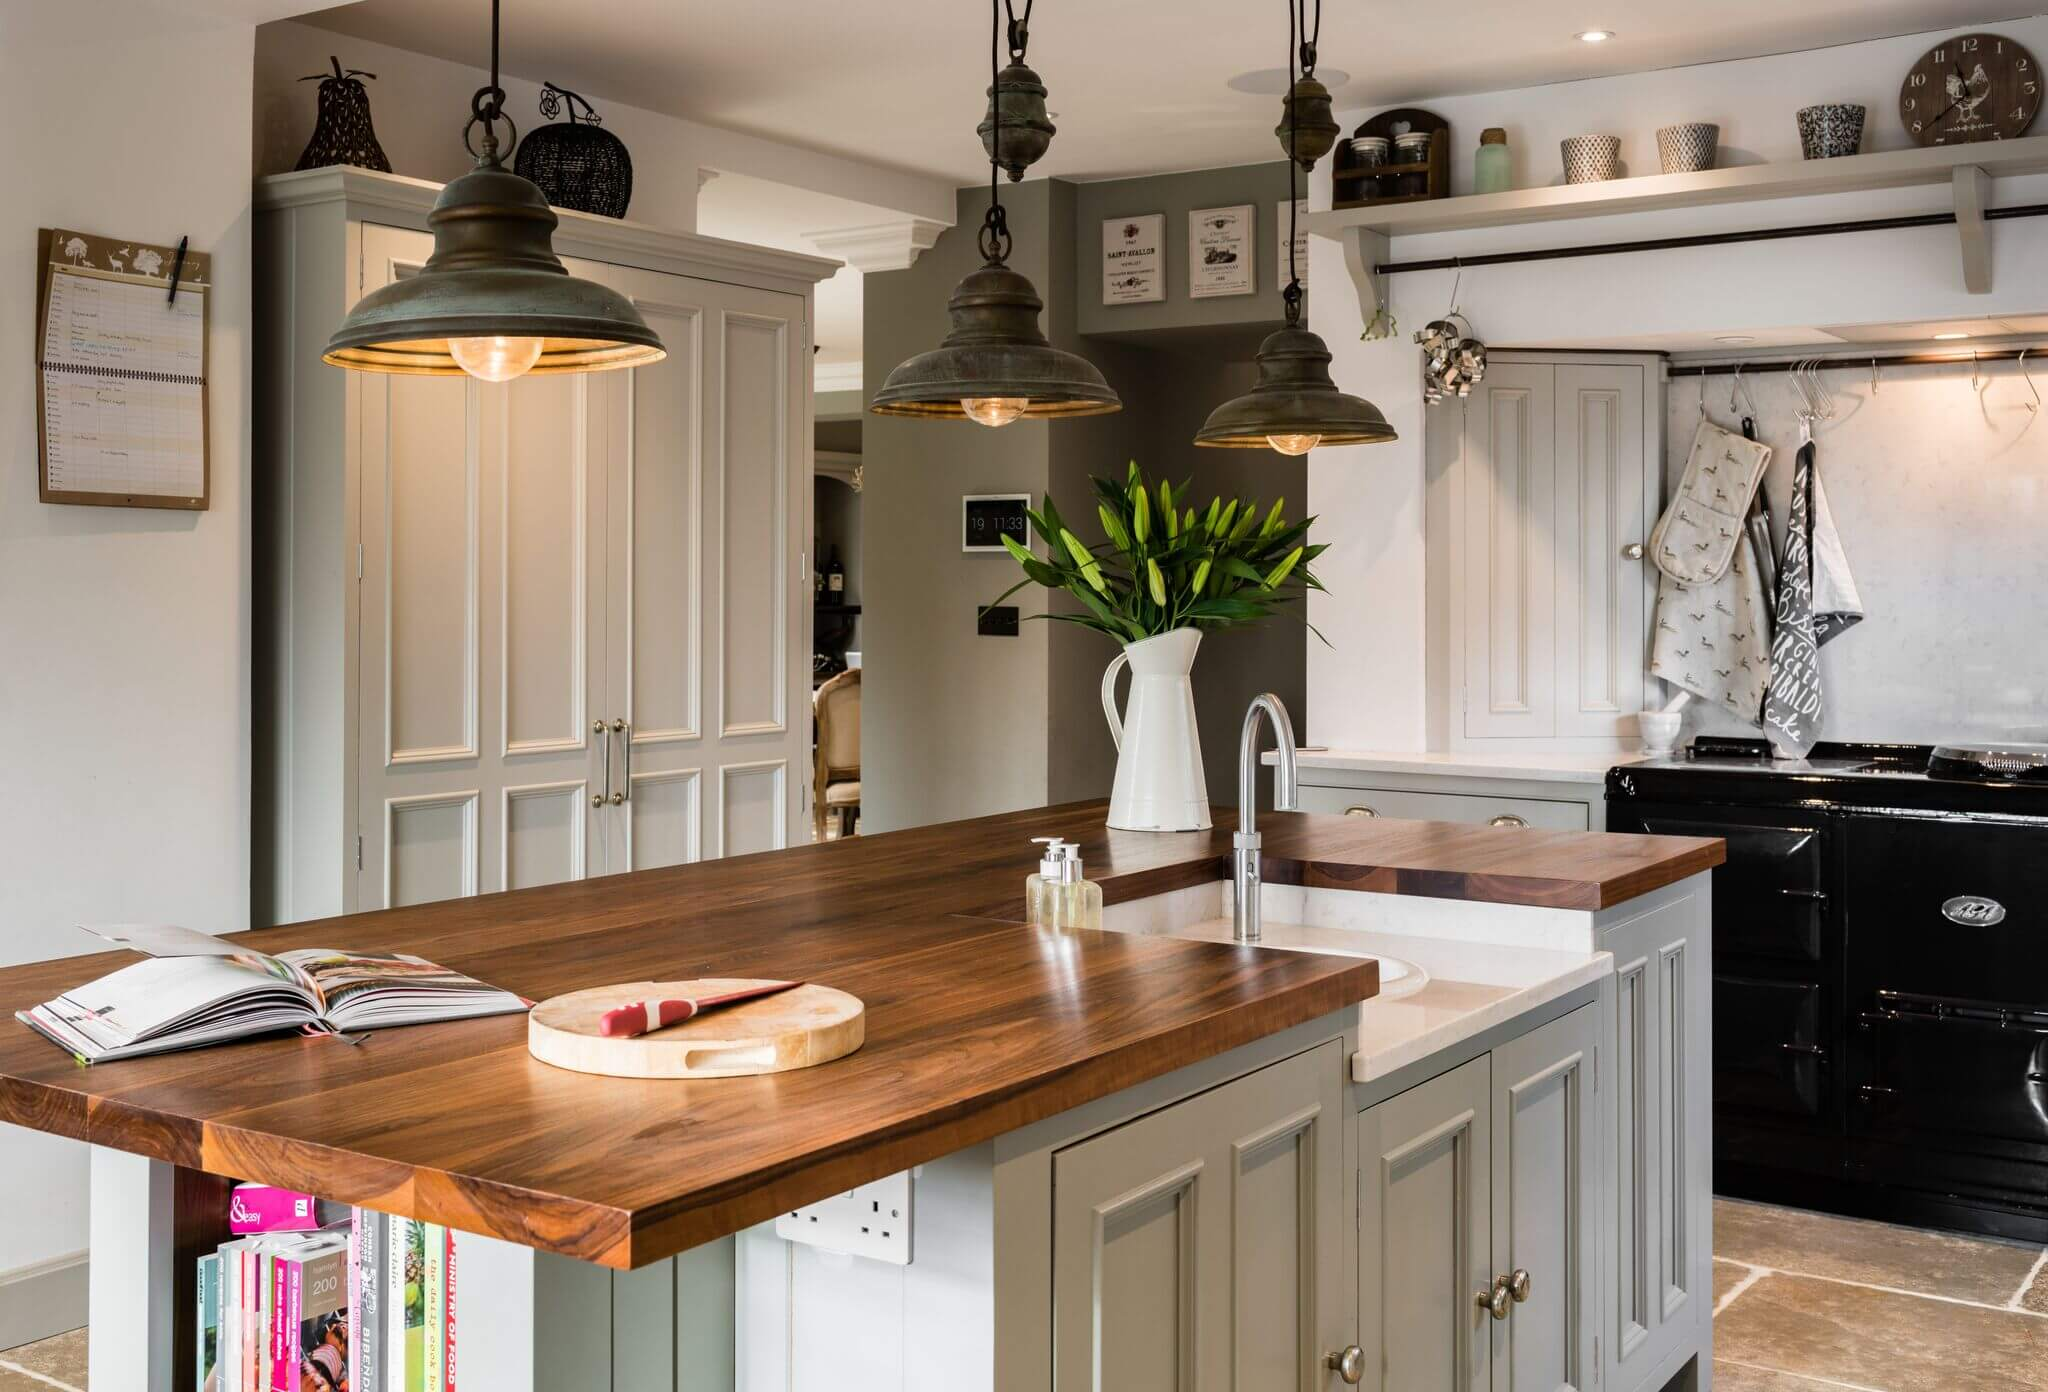 Hill Farm Kitchen in Rutland - Hill Farm Furniture